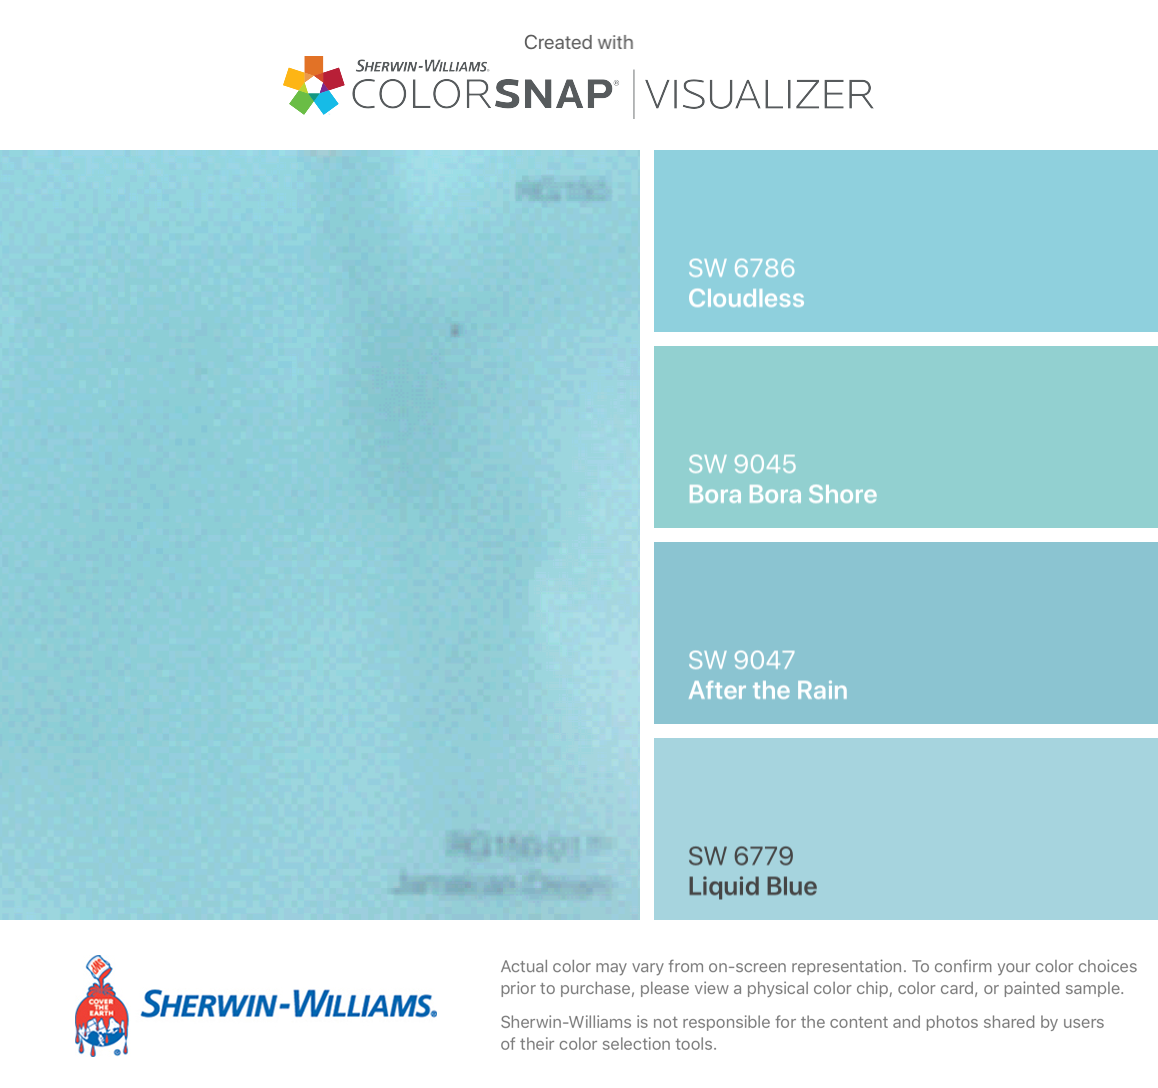 Matches To The Actual Jamaican Dream Color Card Sherwin Williams Cloudless Sw 6786 Bora S 9045 After Rain 9047 Liquid Blue